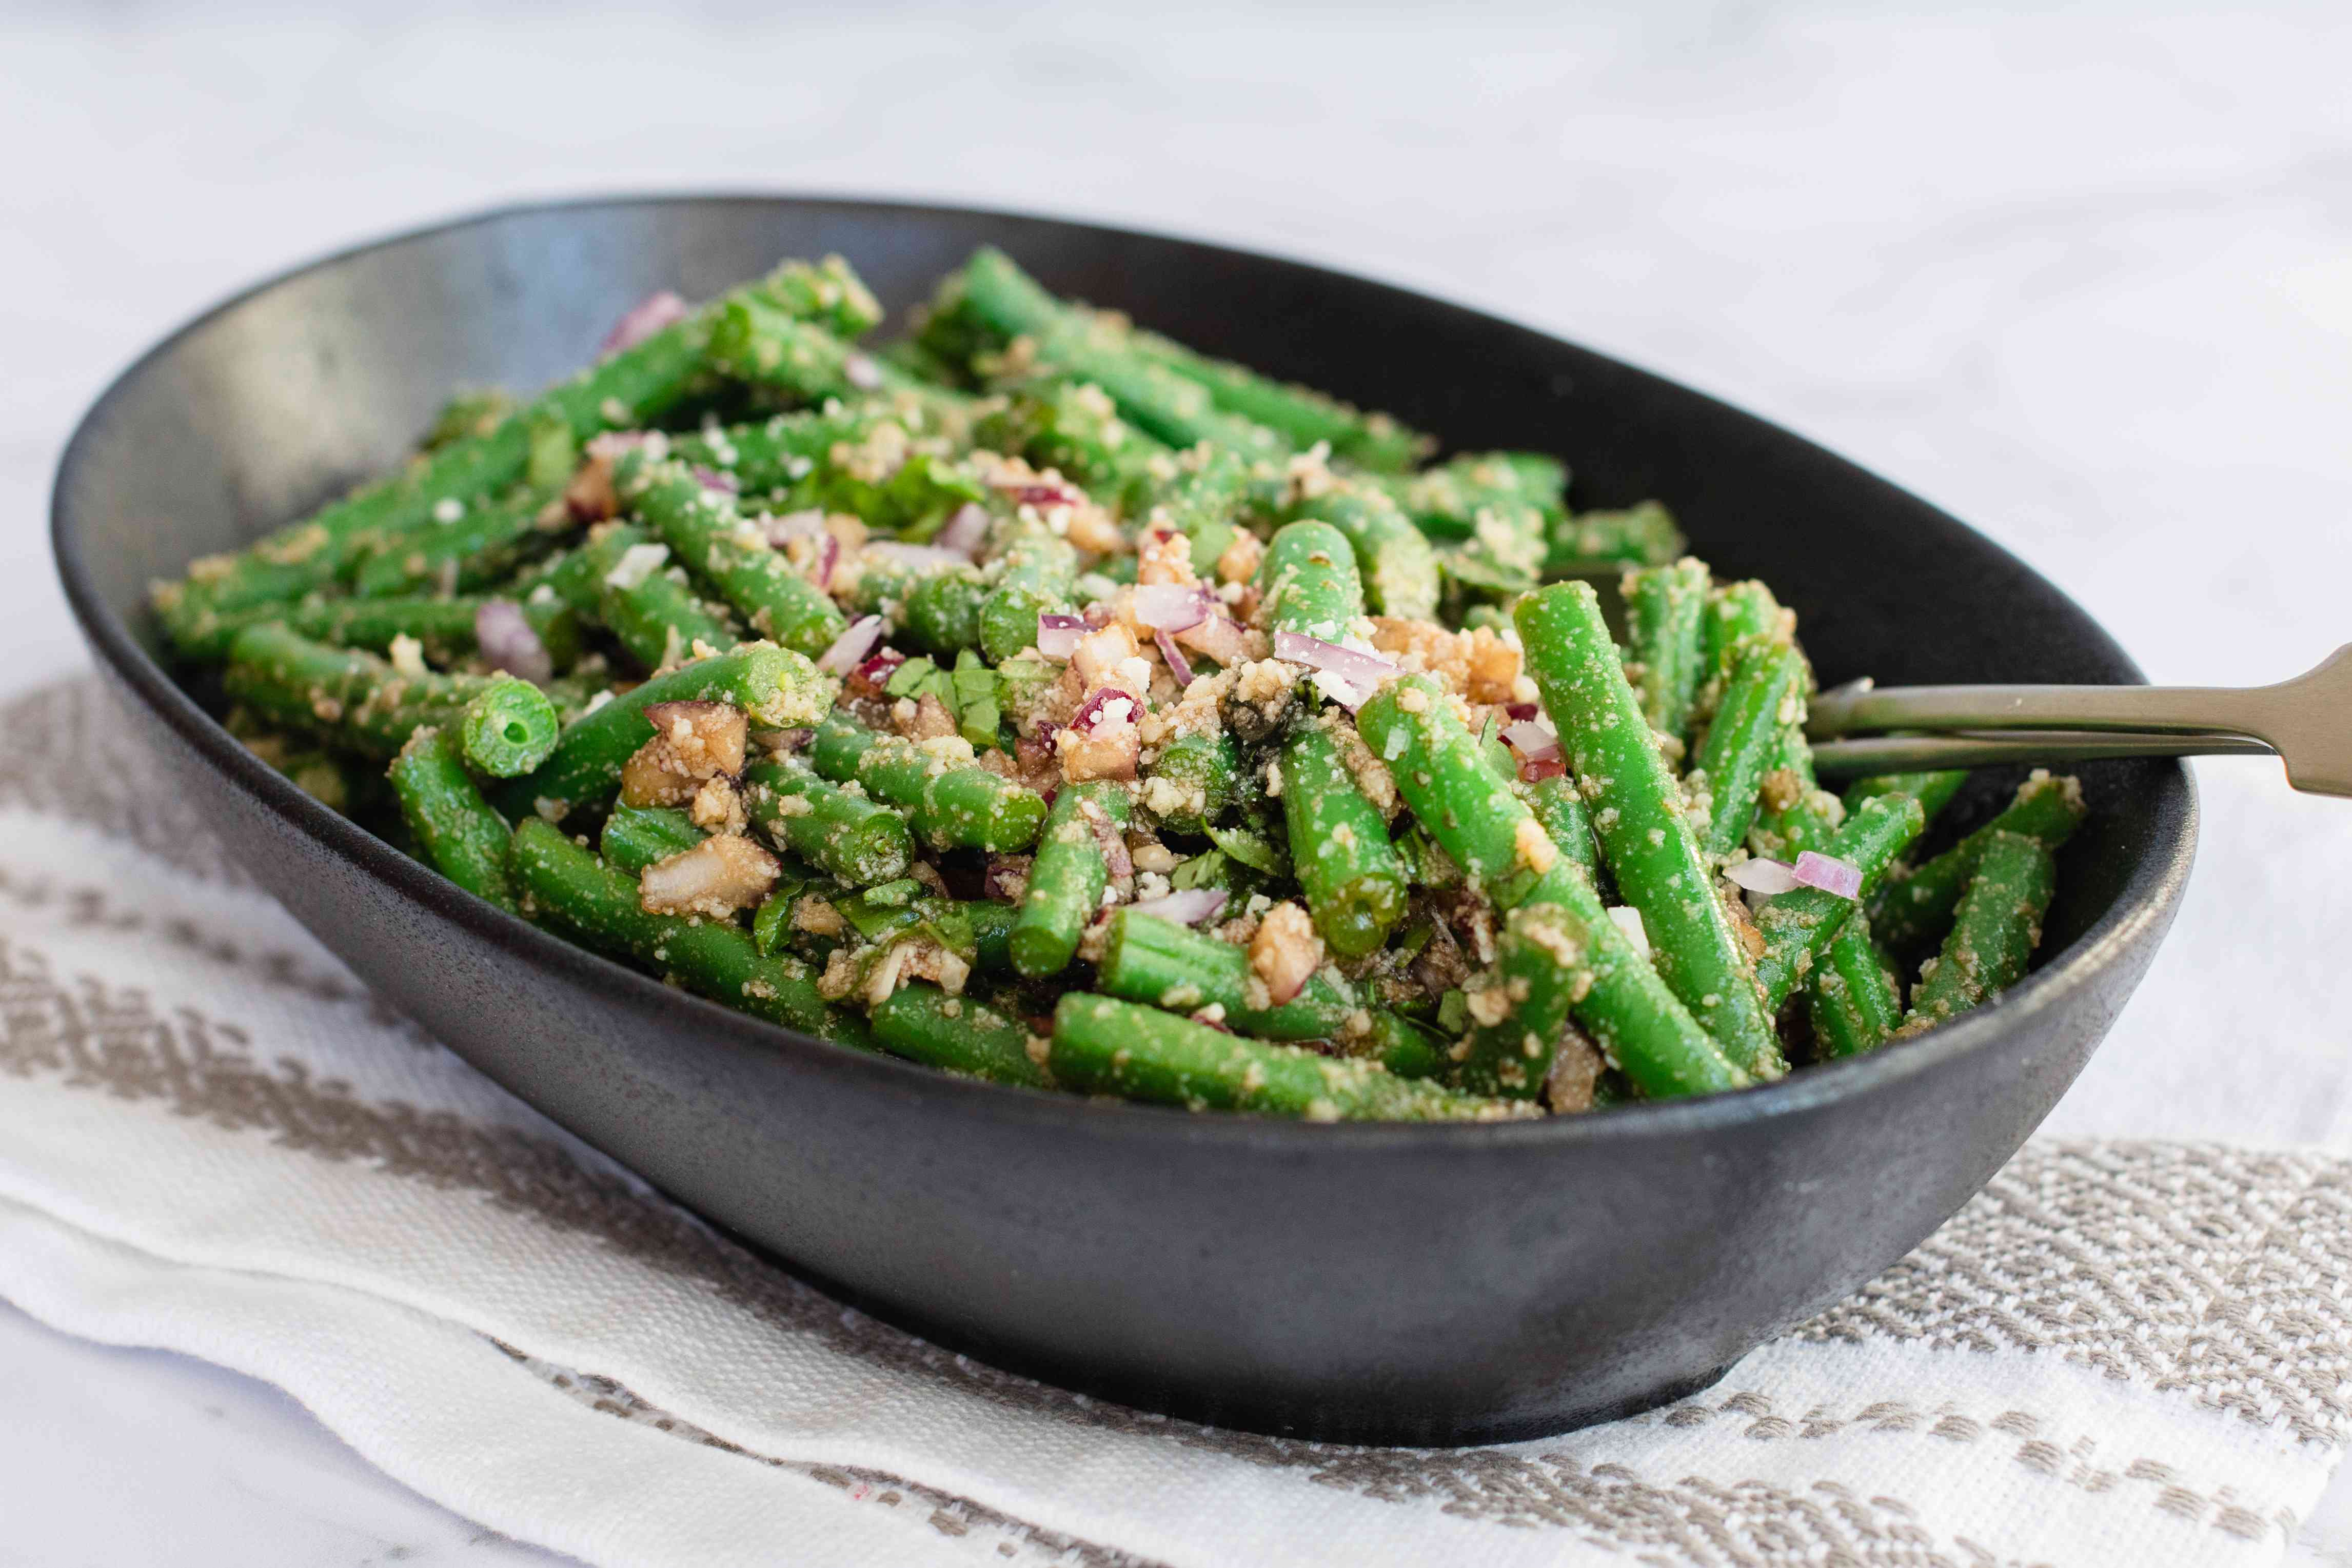 Side view of green bean salad in a serving bowl.